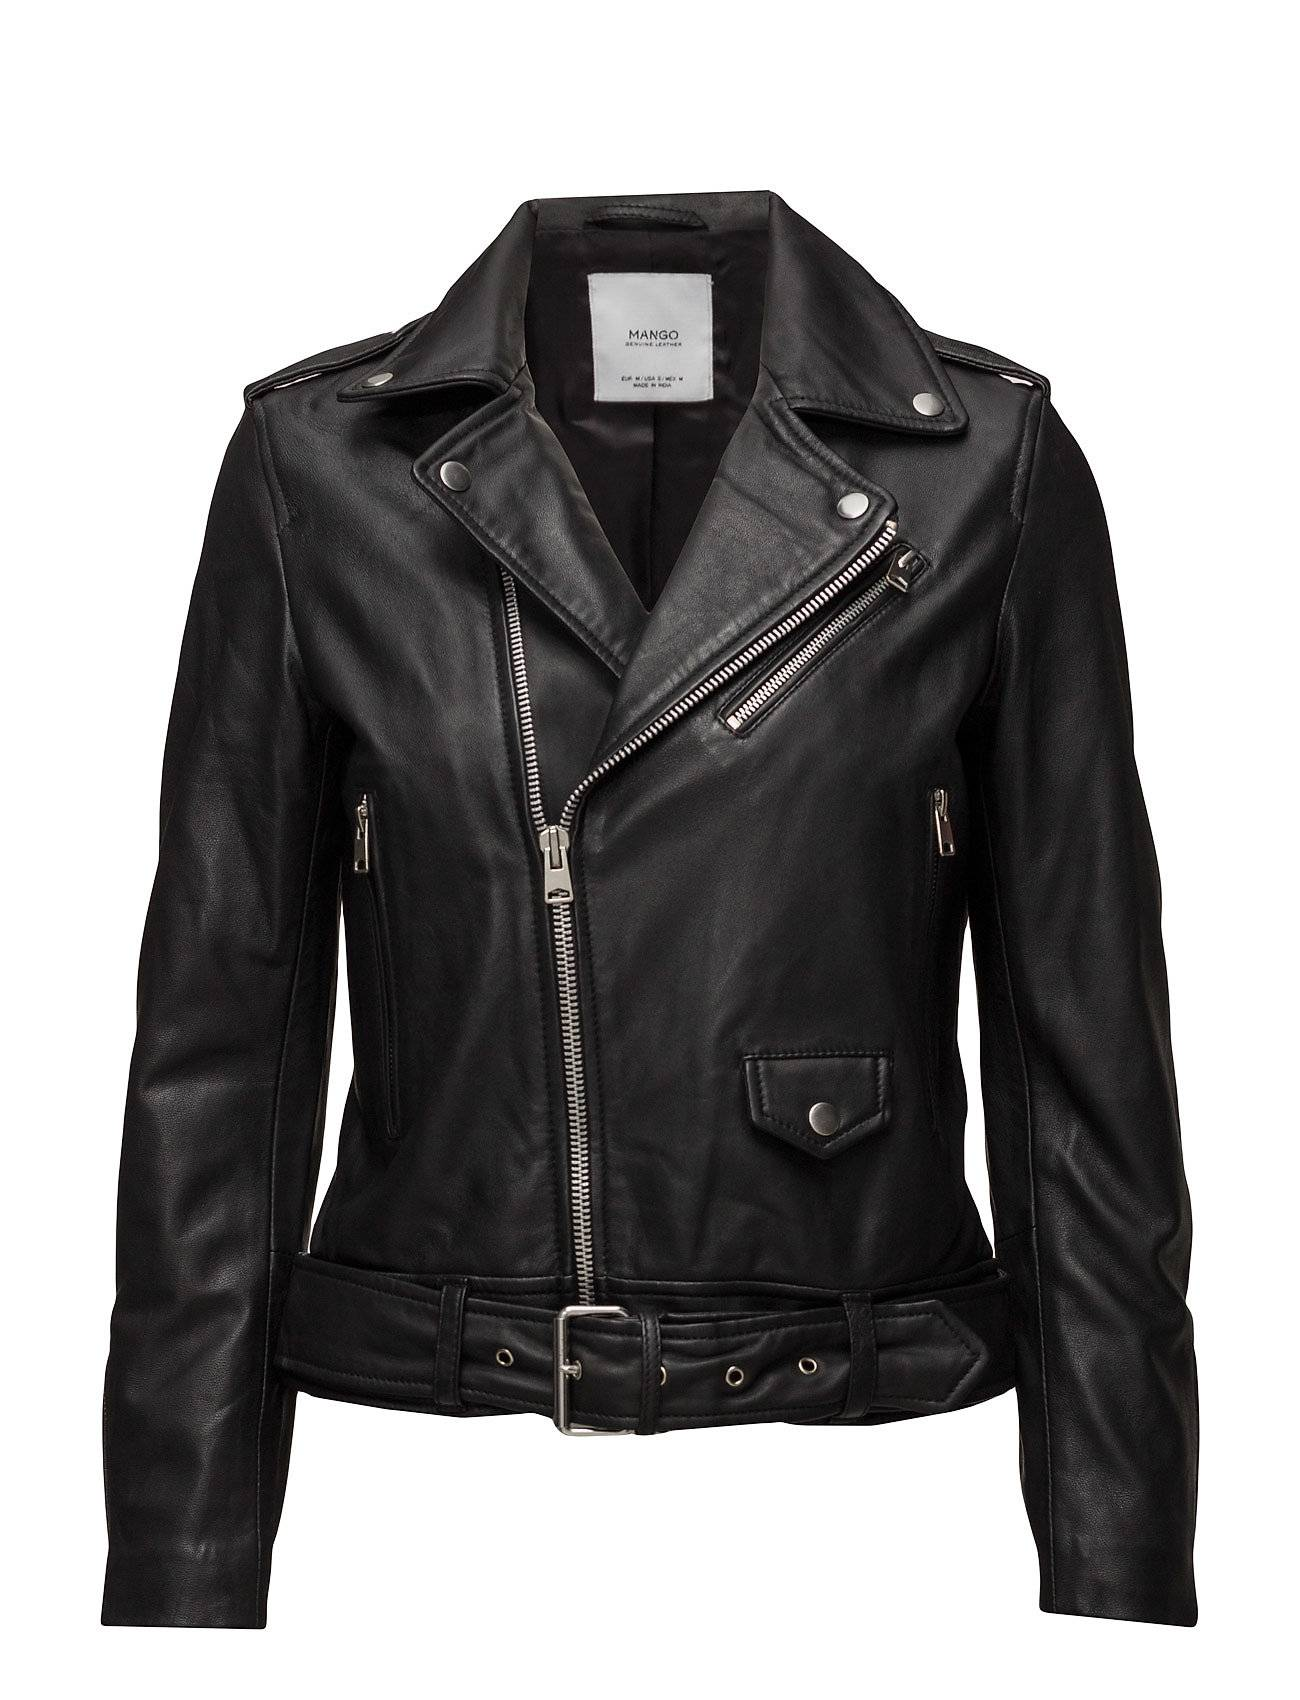 Mango Leather Biker Jacket